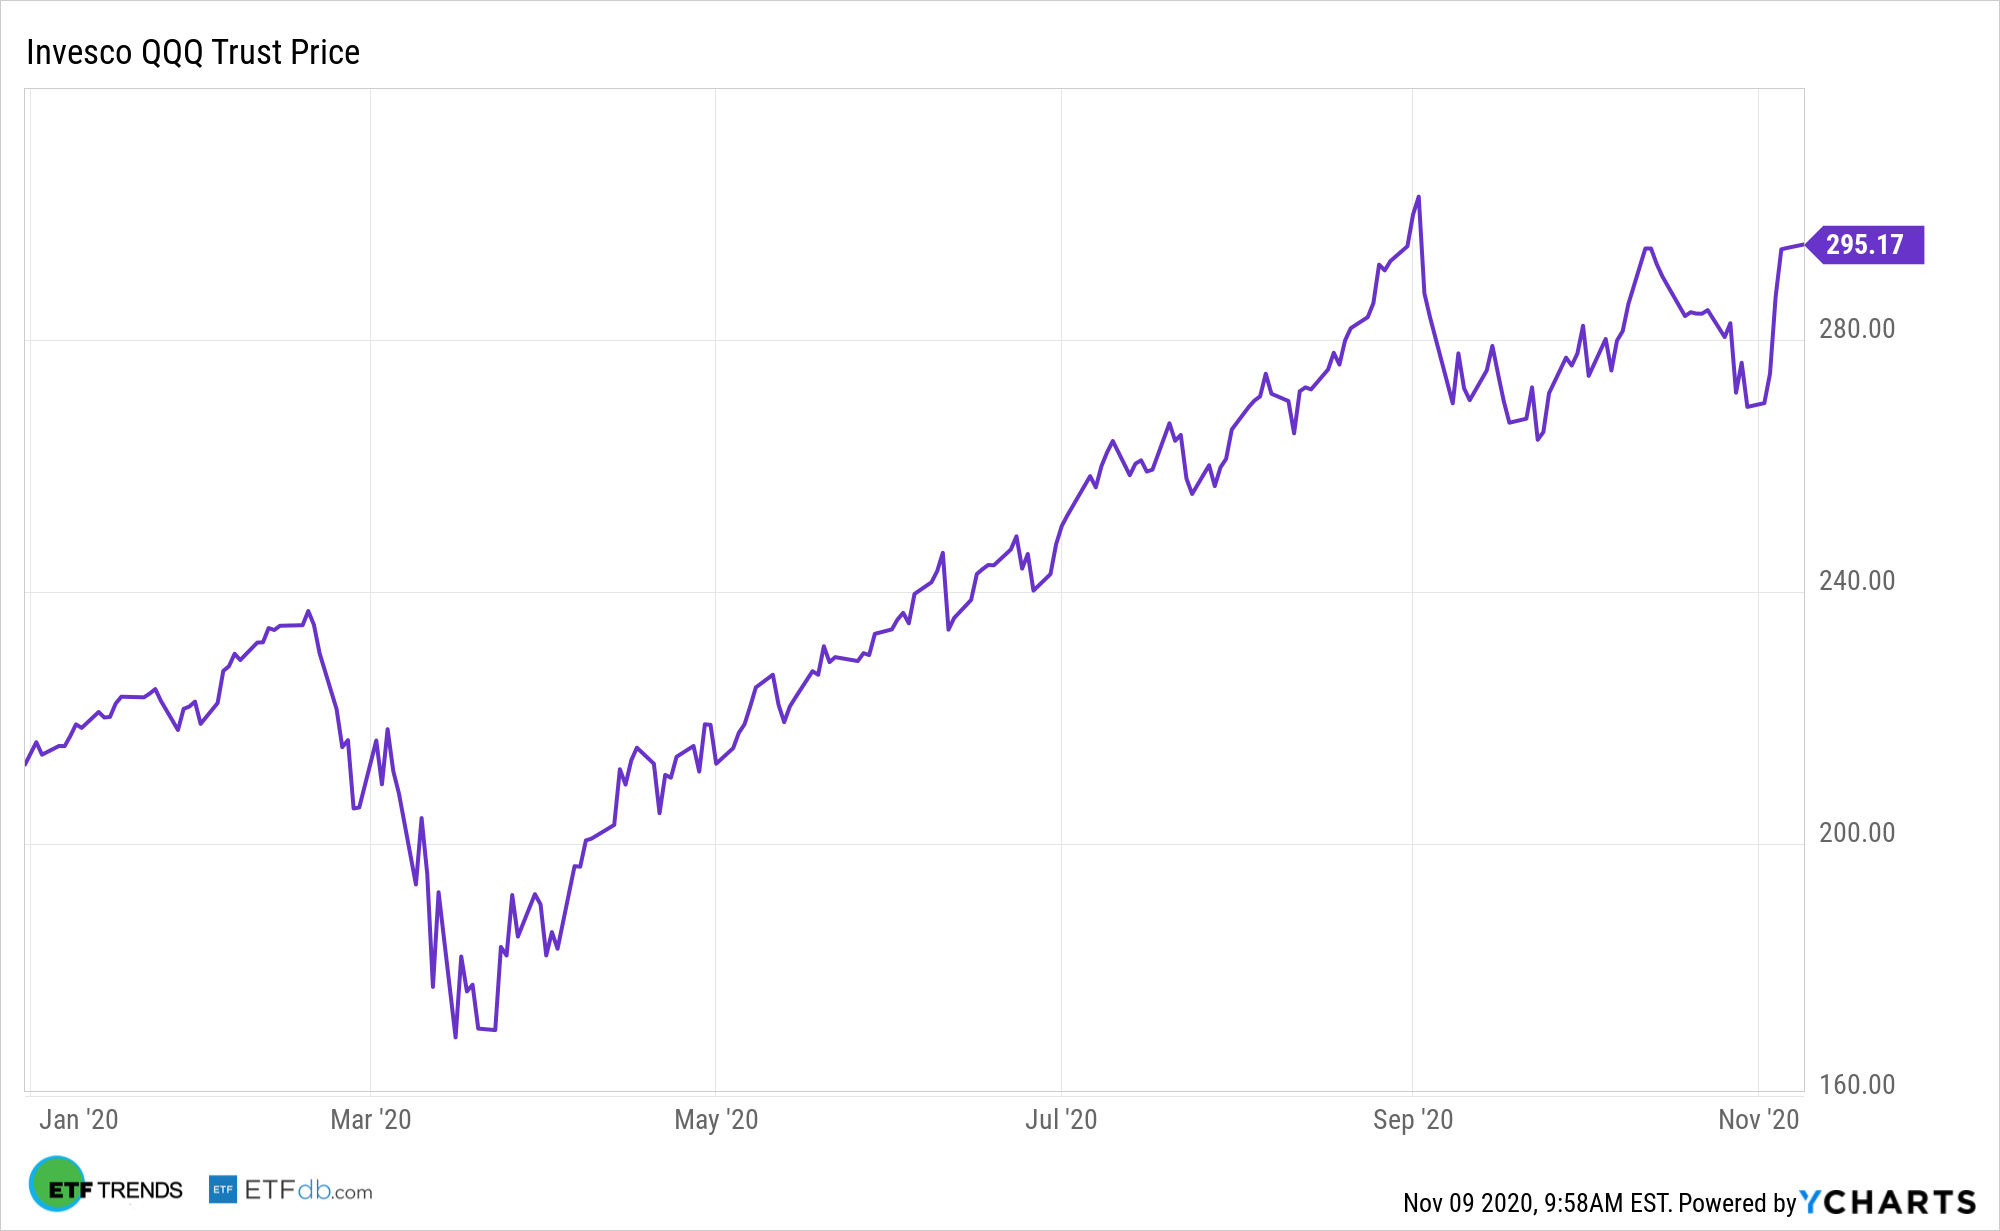 QQQ YTD Performance